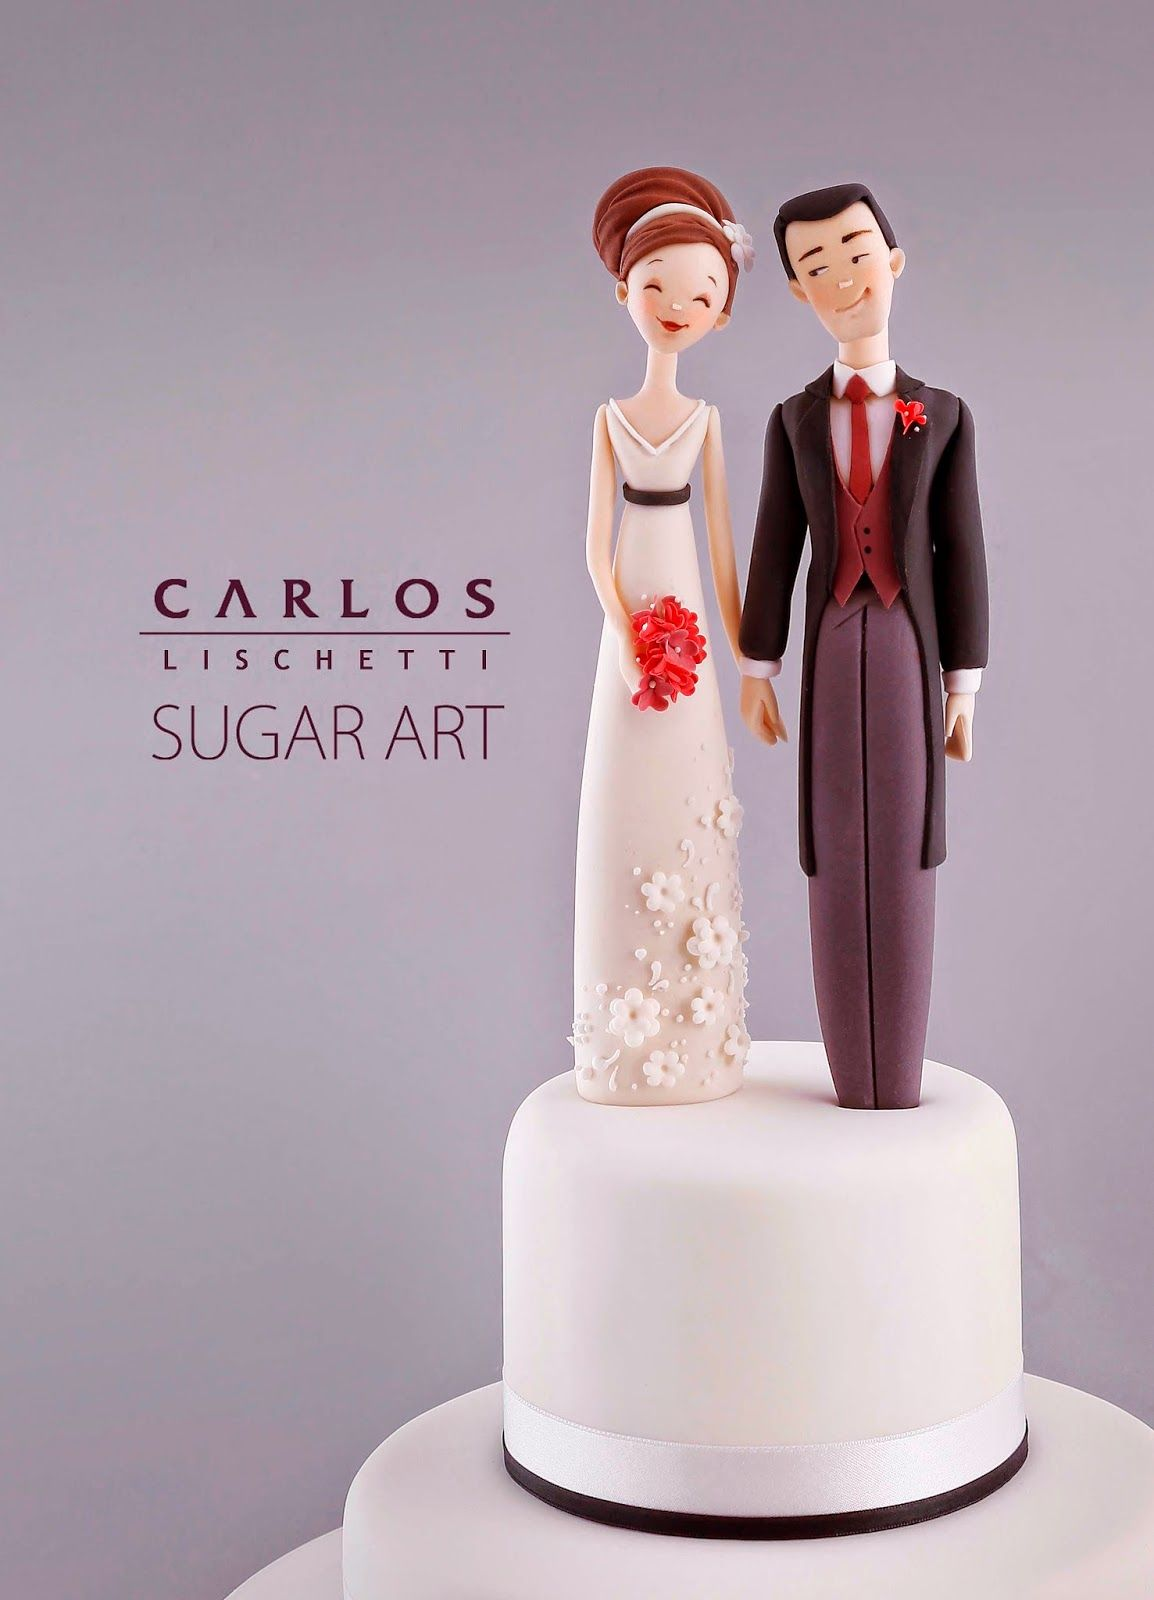 Amazing Talent For Cake Toppers If You Re Interested In Making Your Own Topper